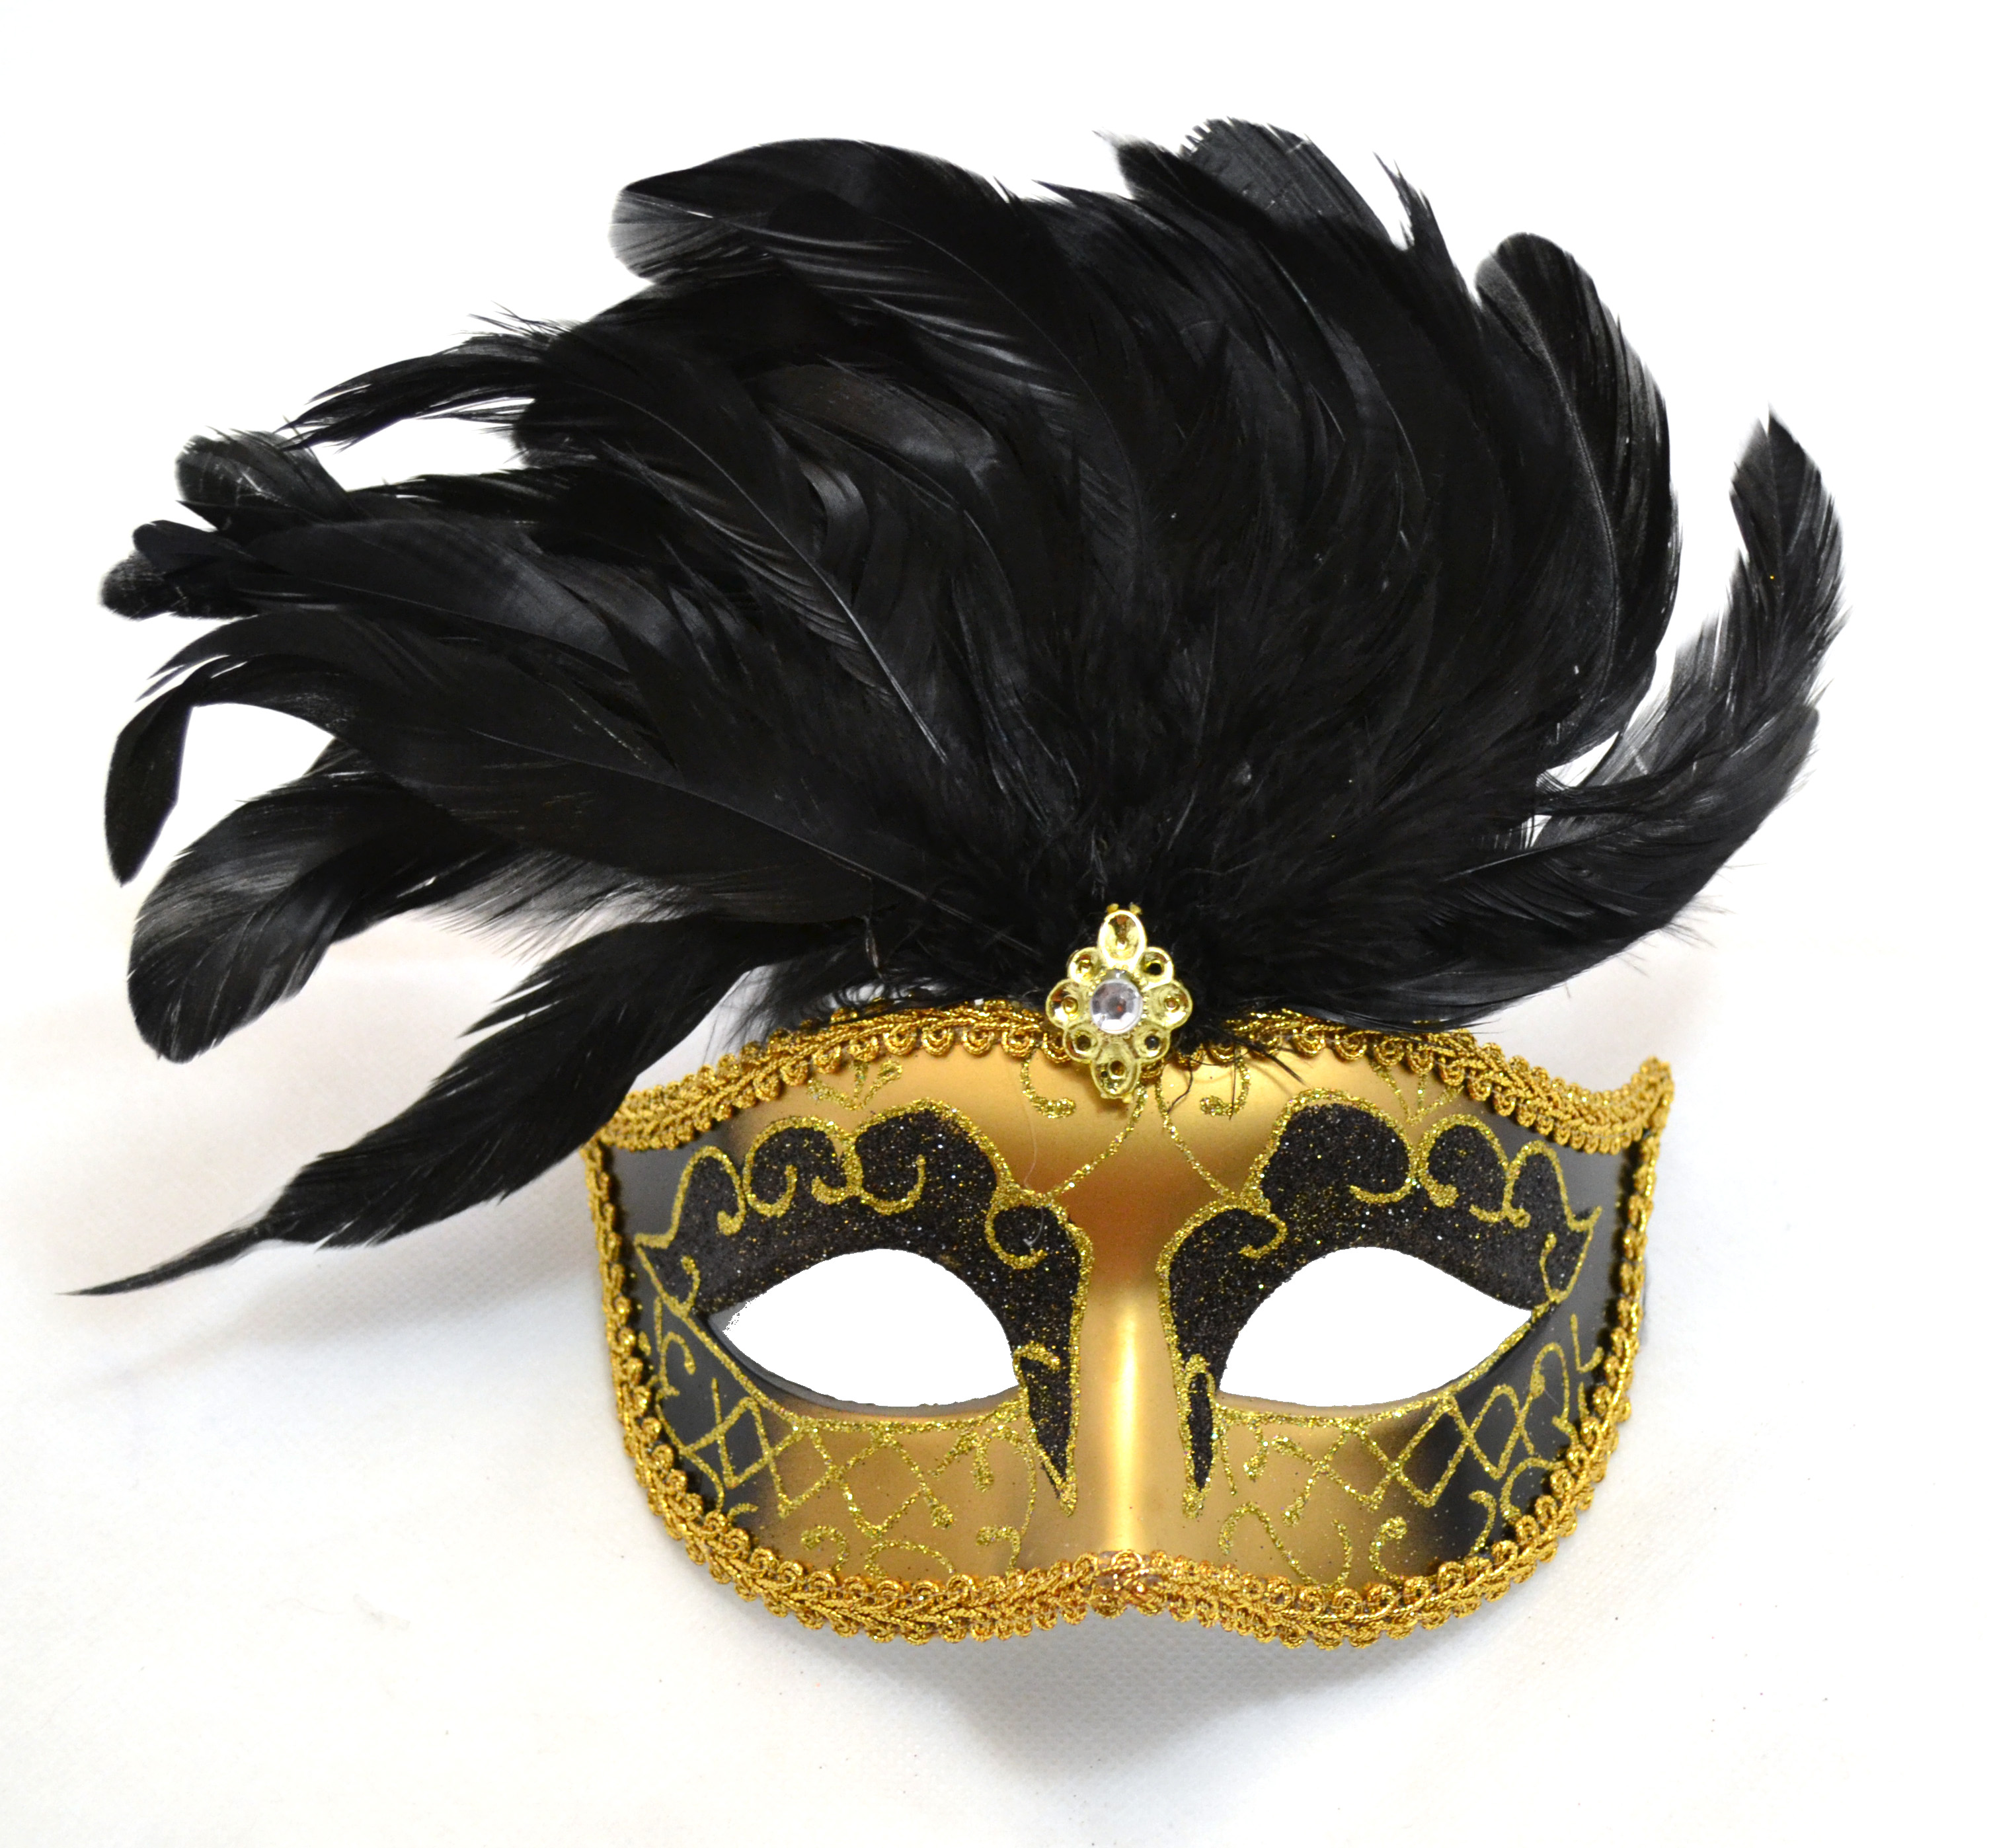 Venetian Black Mask with Short Feathers